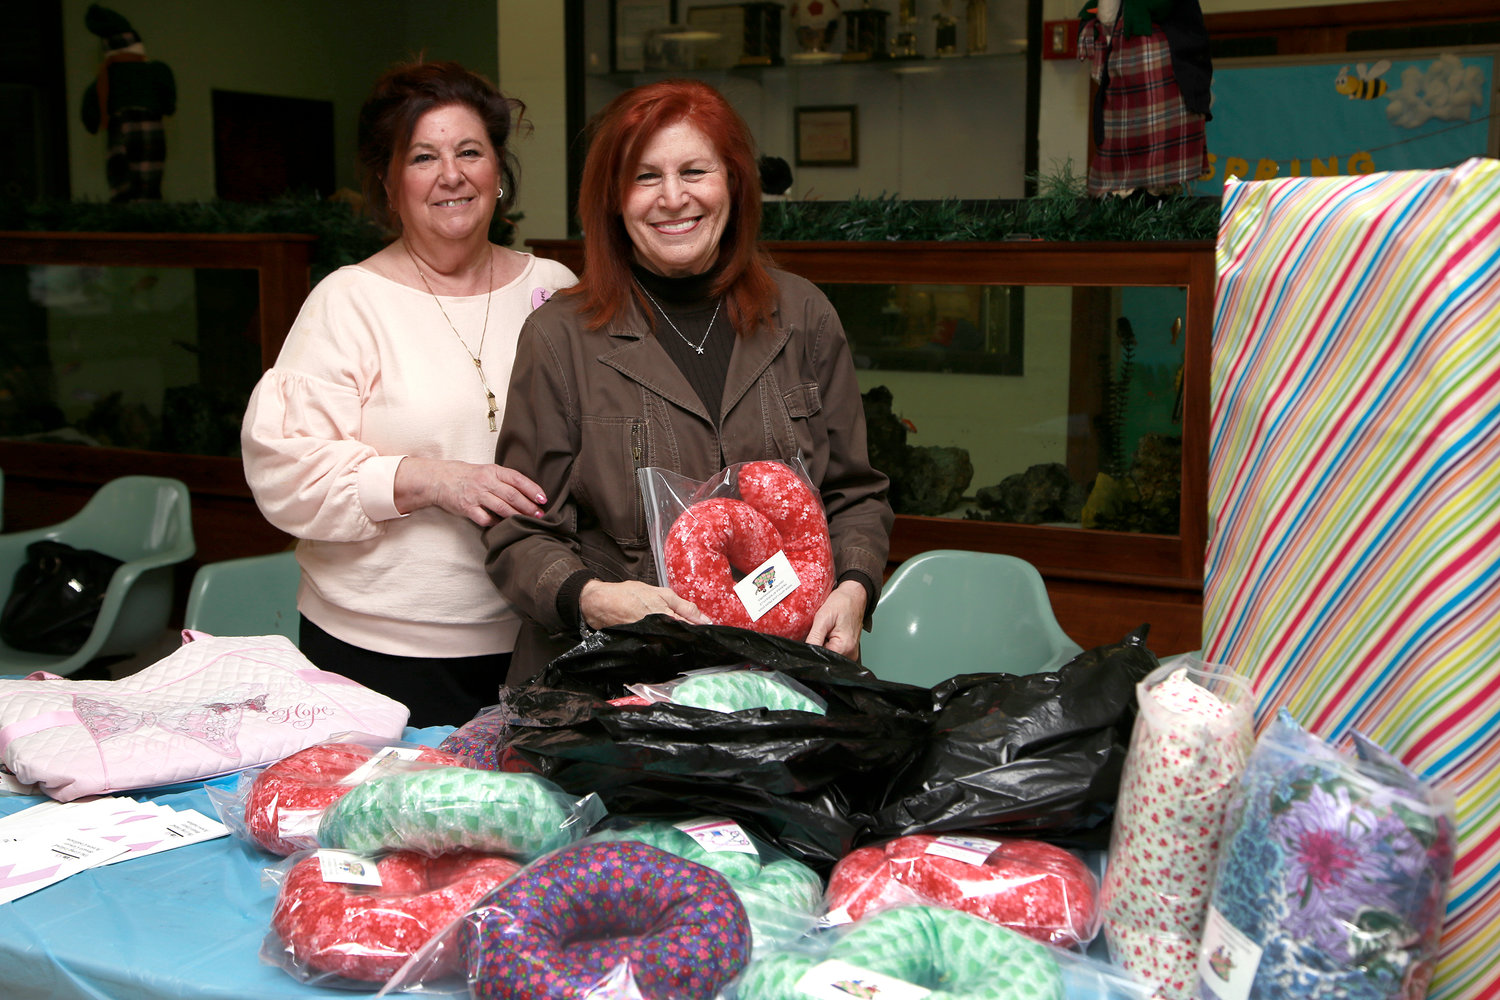 Geri Barish, of Hewlett House, was grateful for the neck pillows made by the Rockville Centre Homemakers, represented by Karen Alterson, the group's co-president.